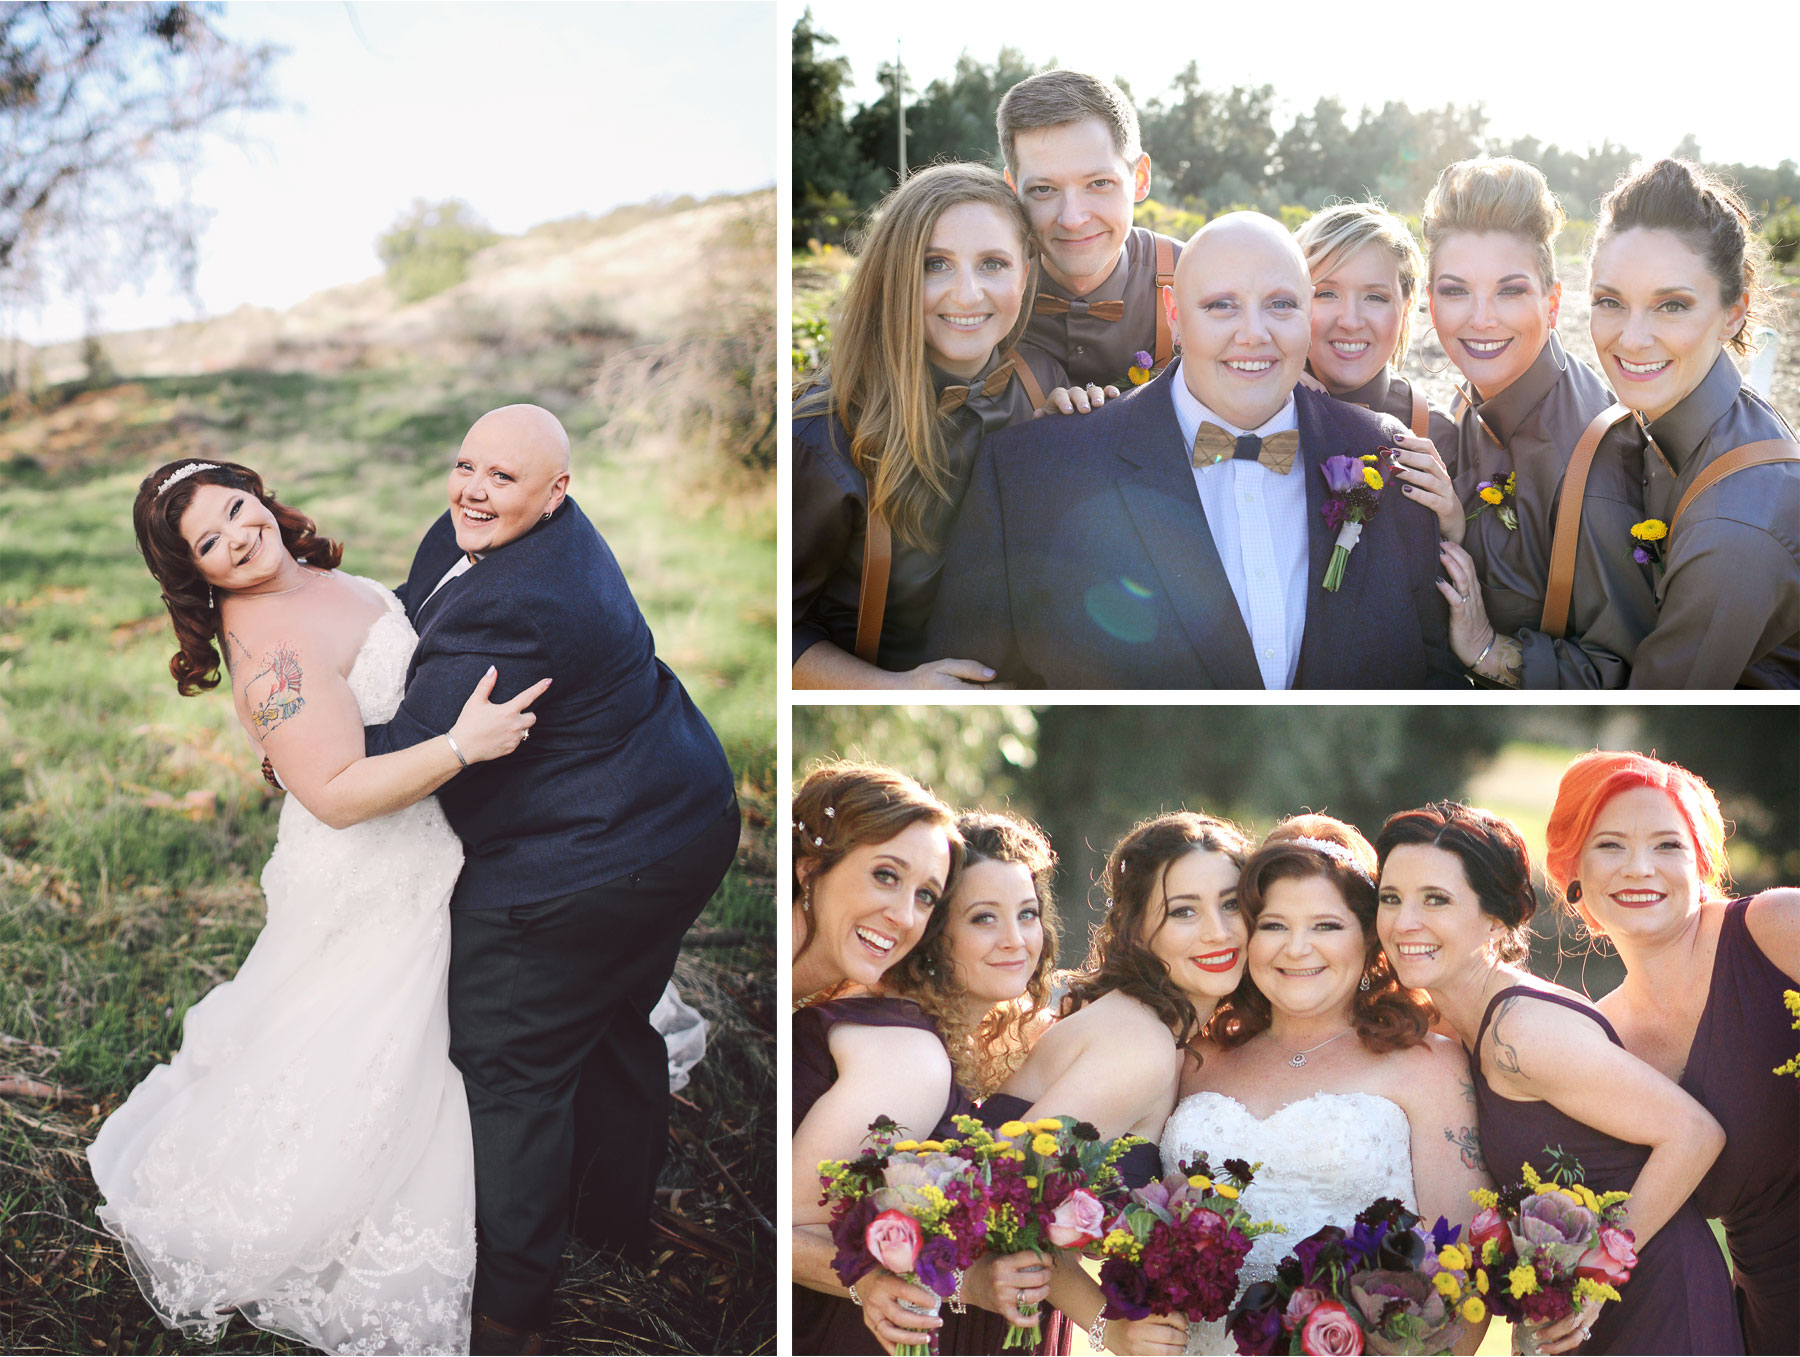 12-Los-Angeles-California-Wedding-Photographer-by-Vick-Photography-Highland-Springs-Ranch-LGBT-Wedding-Party-Group-Rebecca-and-Terri.jpg